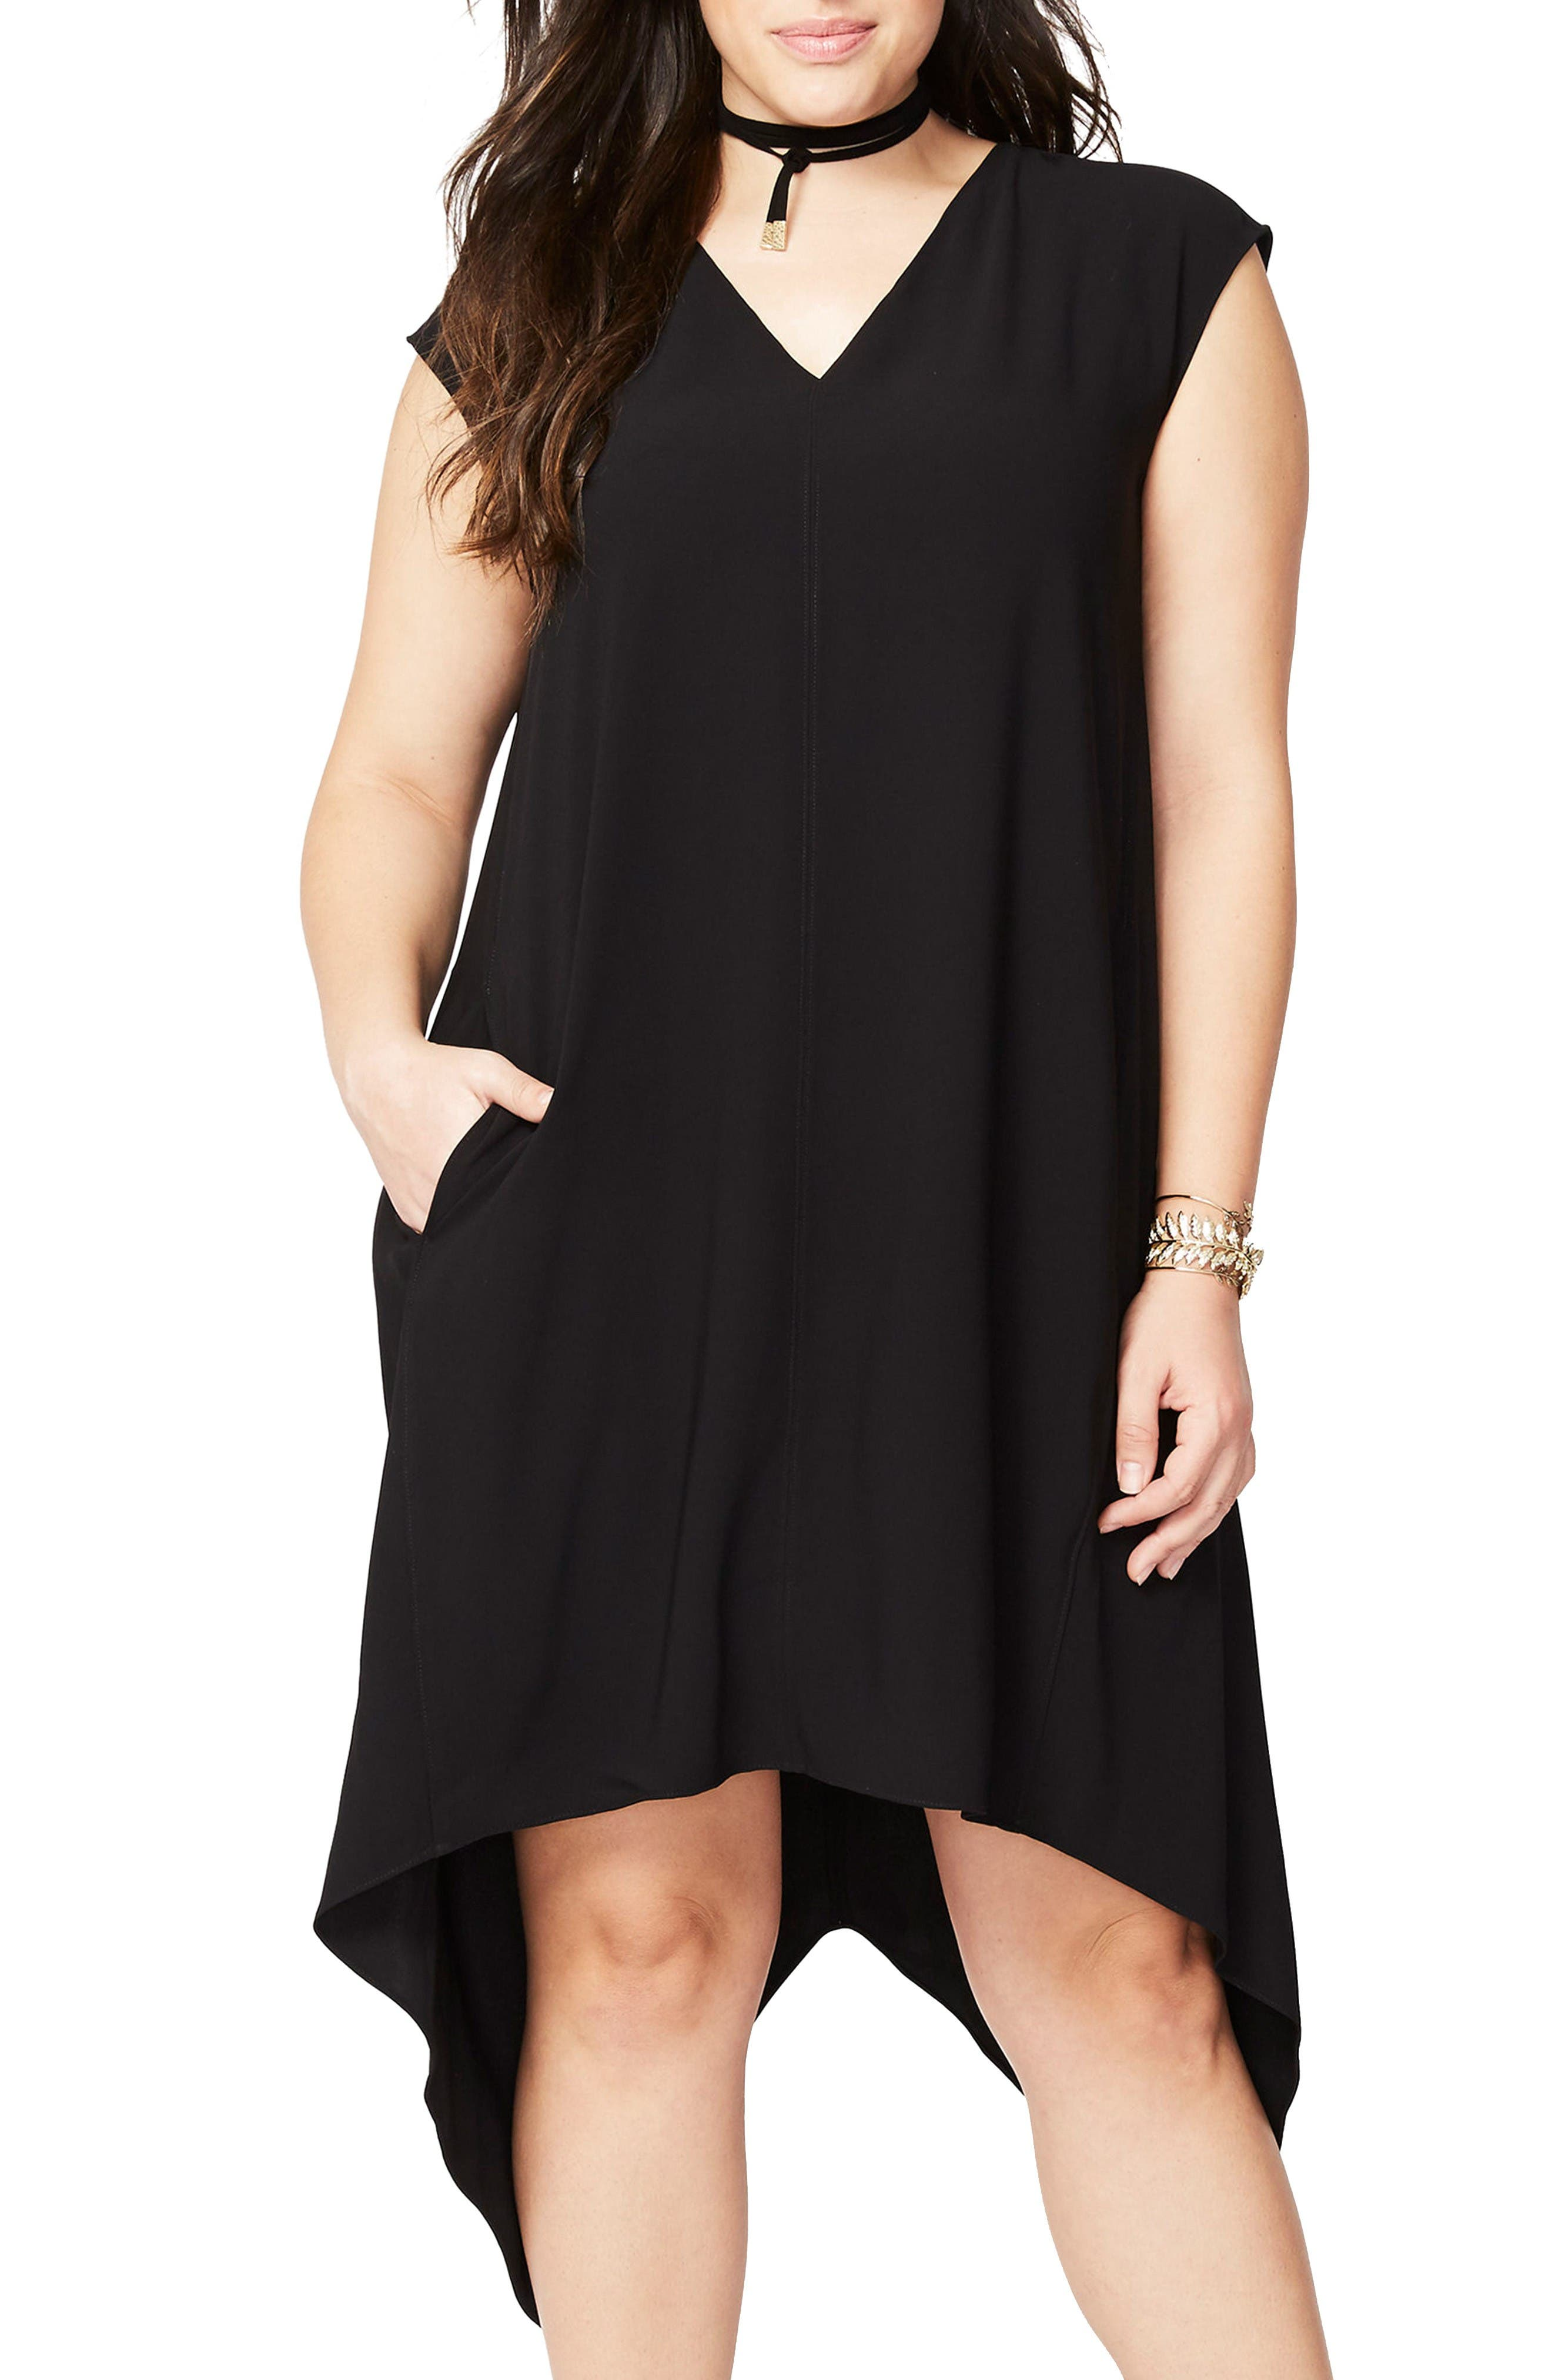 Alternate Image 1 Selected - RACHEL Rachel Roy Sydney High/Low Dress (Plus Size)